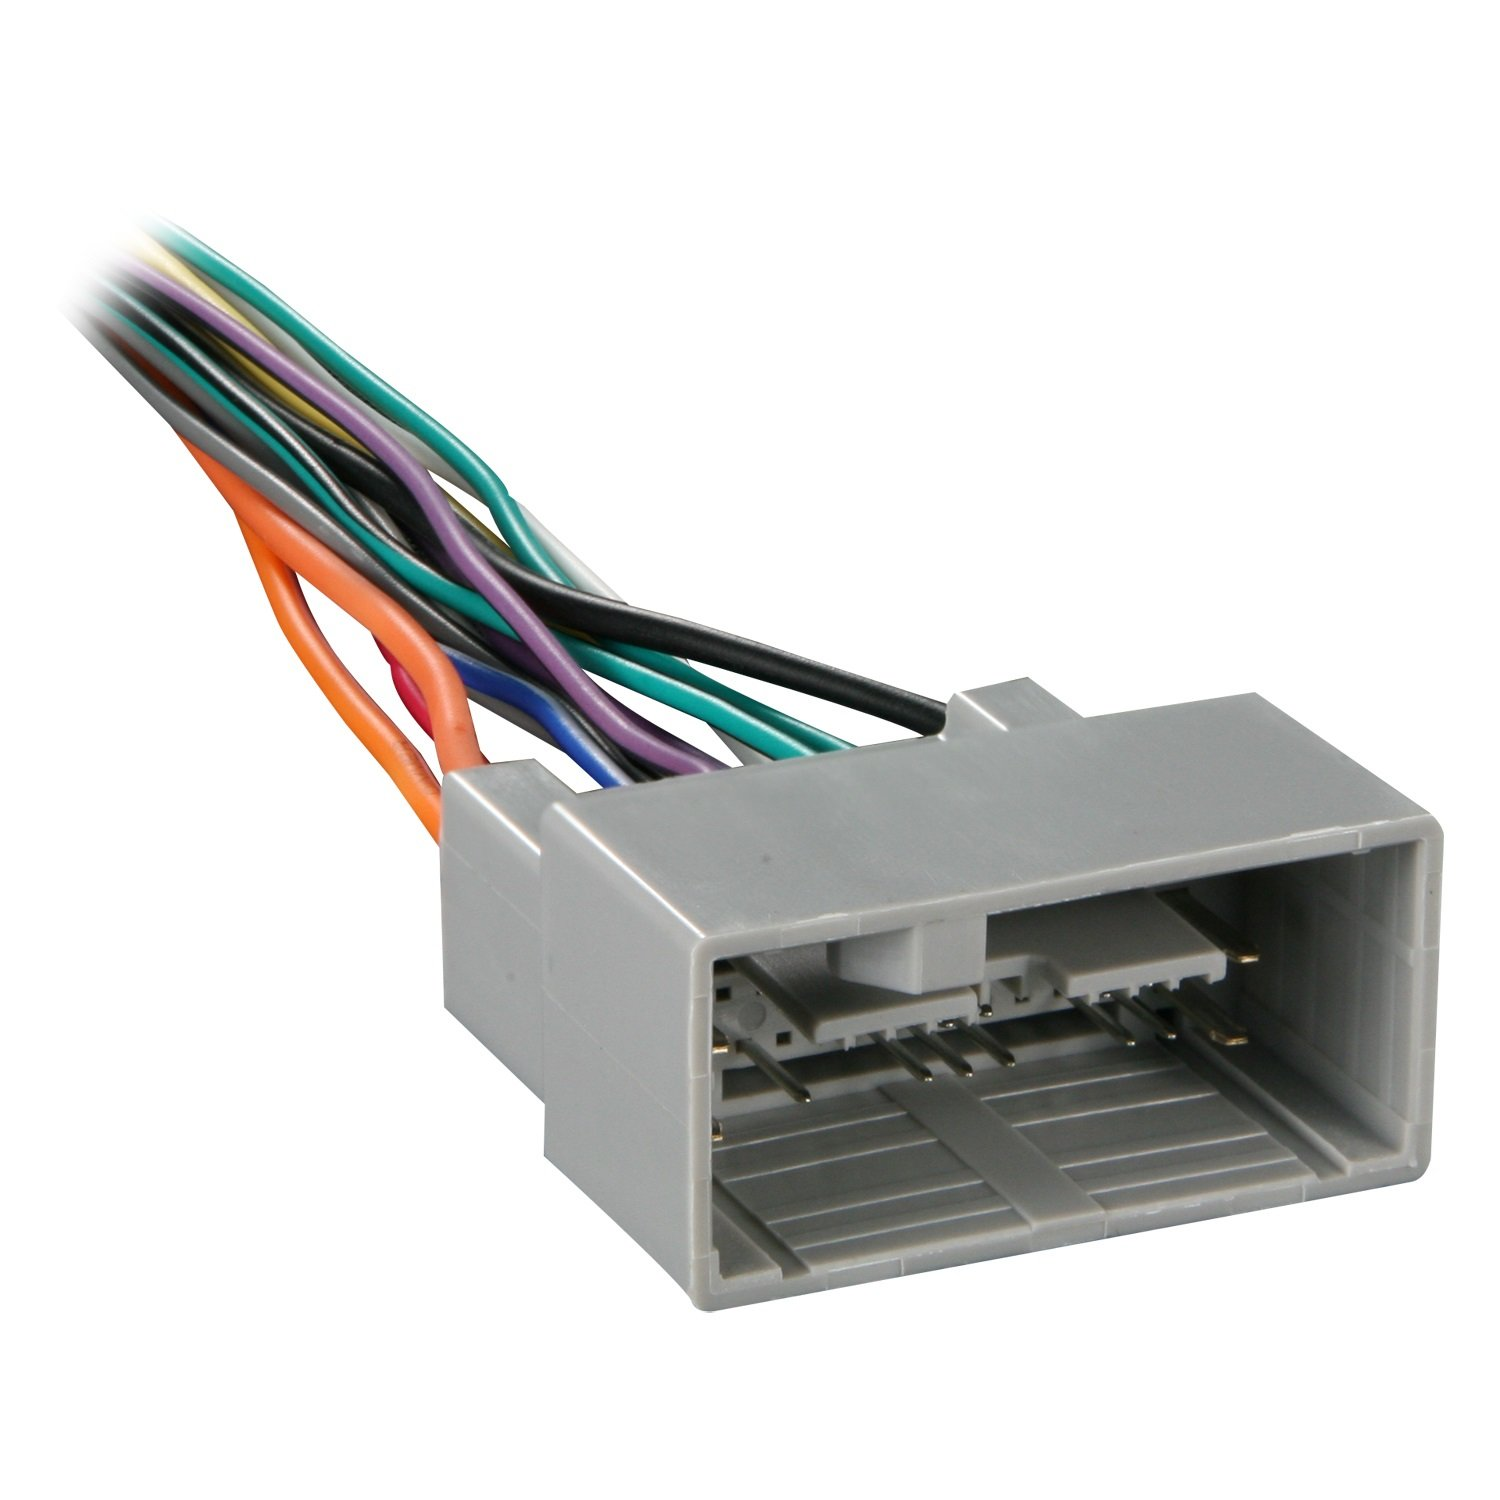 613Kg8IWI7L._SL1500_ amazon com metra 70 1729 radio wiring harness for honda 2008 up honda radio wiring harness at bayanpartner.co